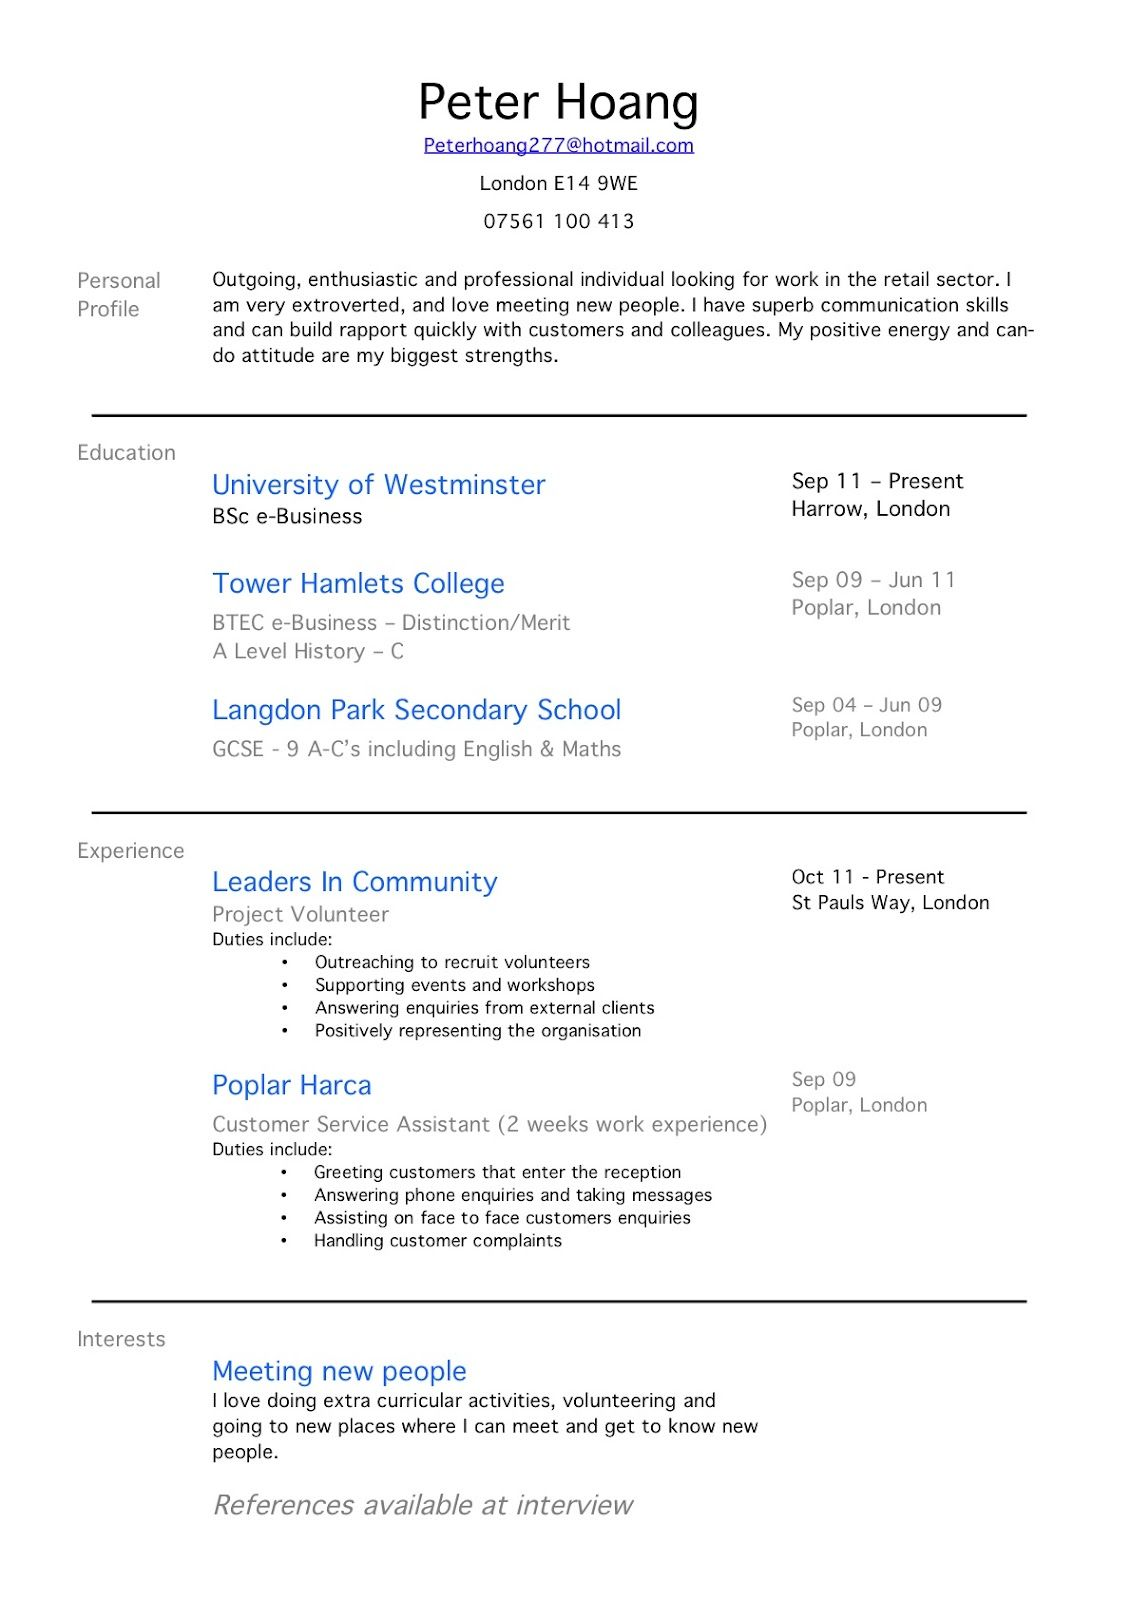 How To Write A Teacher Resume With No Experience  How To Make A Job Resume With No Job Experience